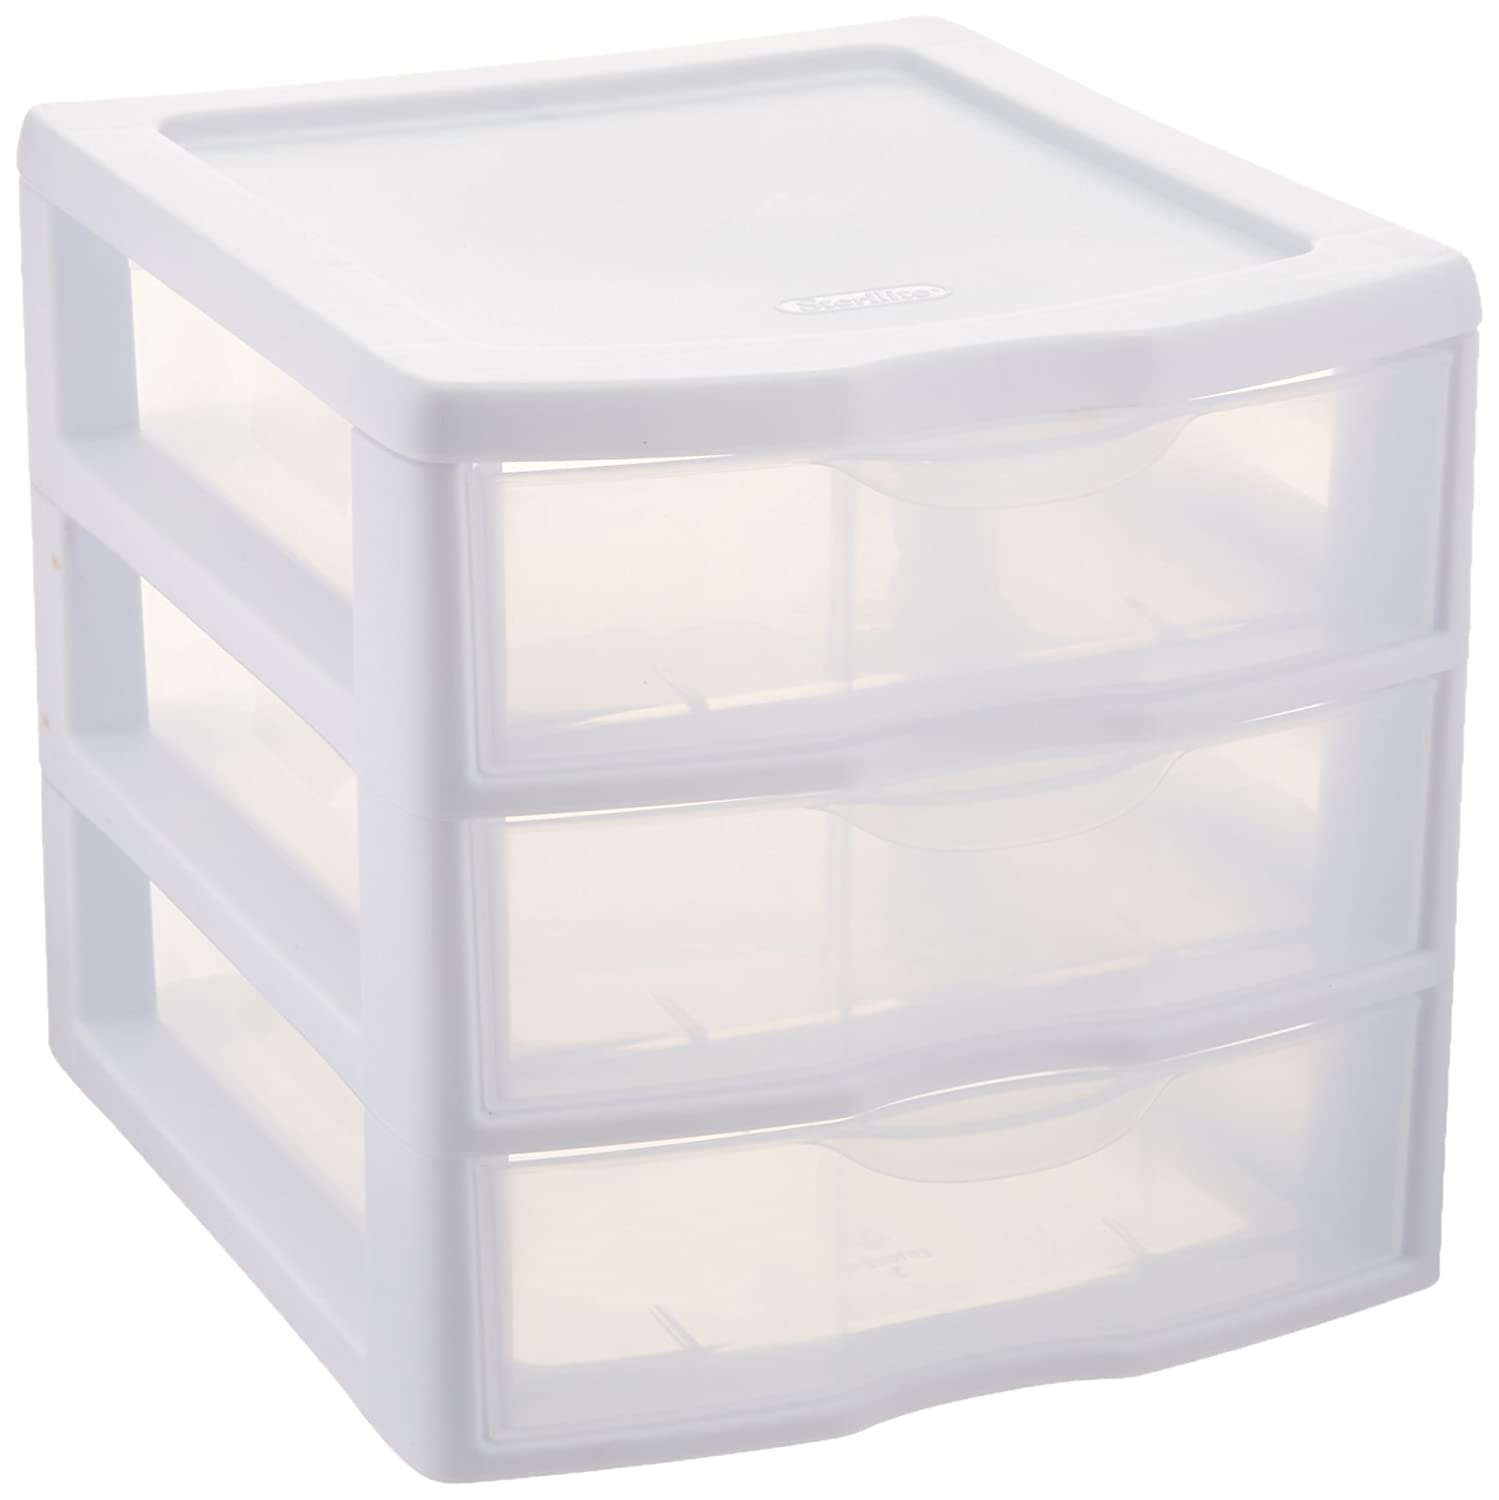 Sterilite ClearView 3 Storage Drawer Organizer